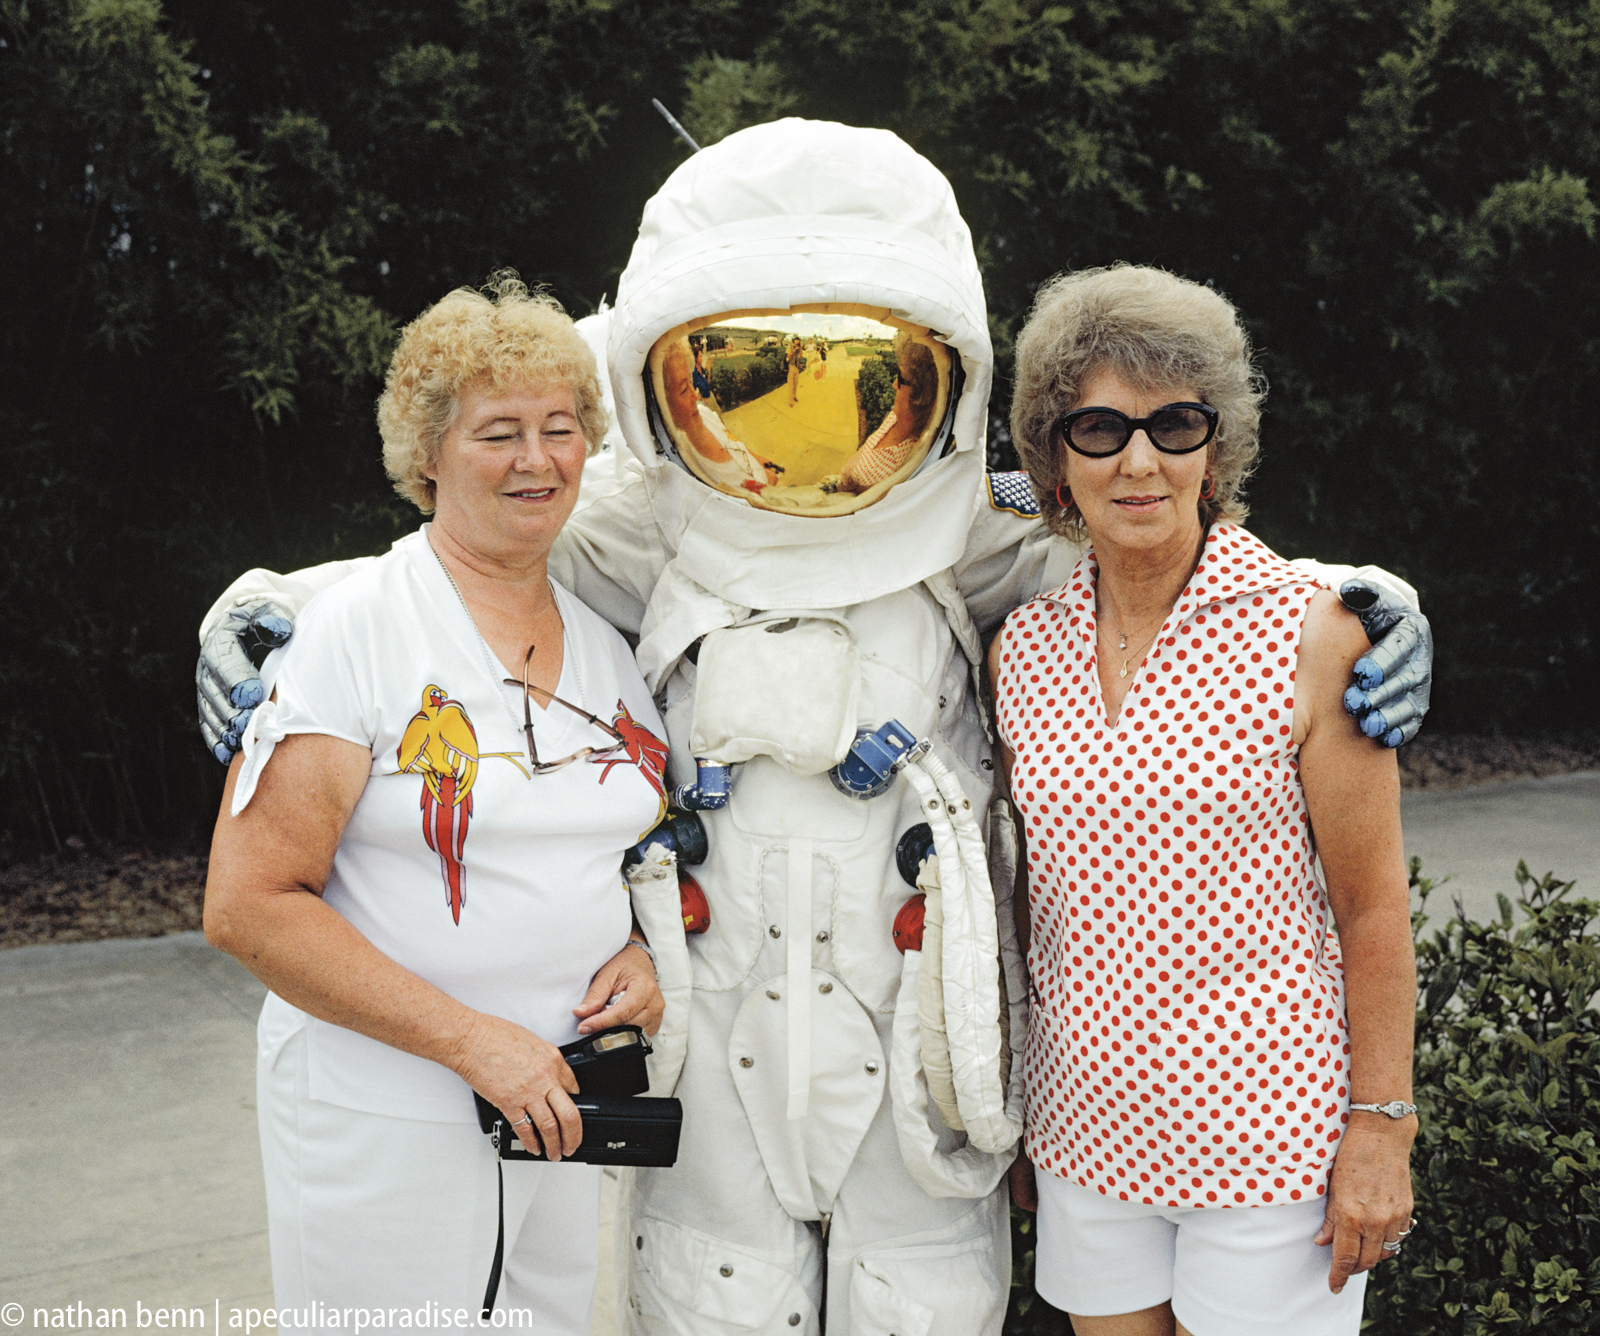 Tourists to the Kennedy Space Center in Orlando, Florida posing with a pretend astronaut in an Apollo spacesuit. Administered by N